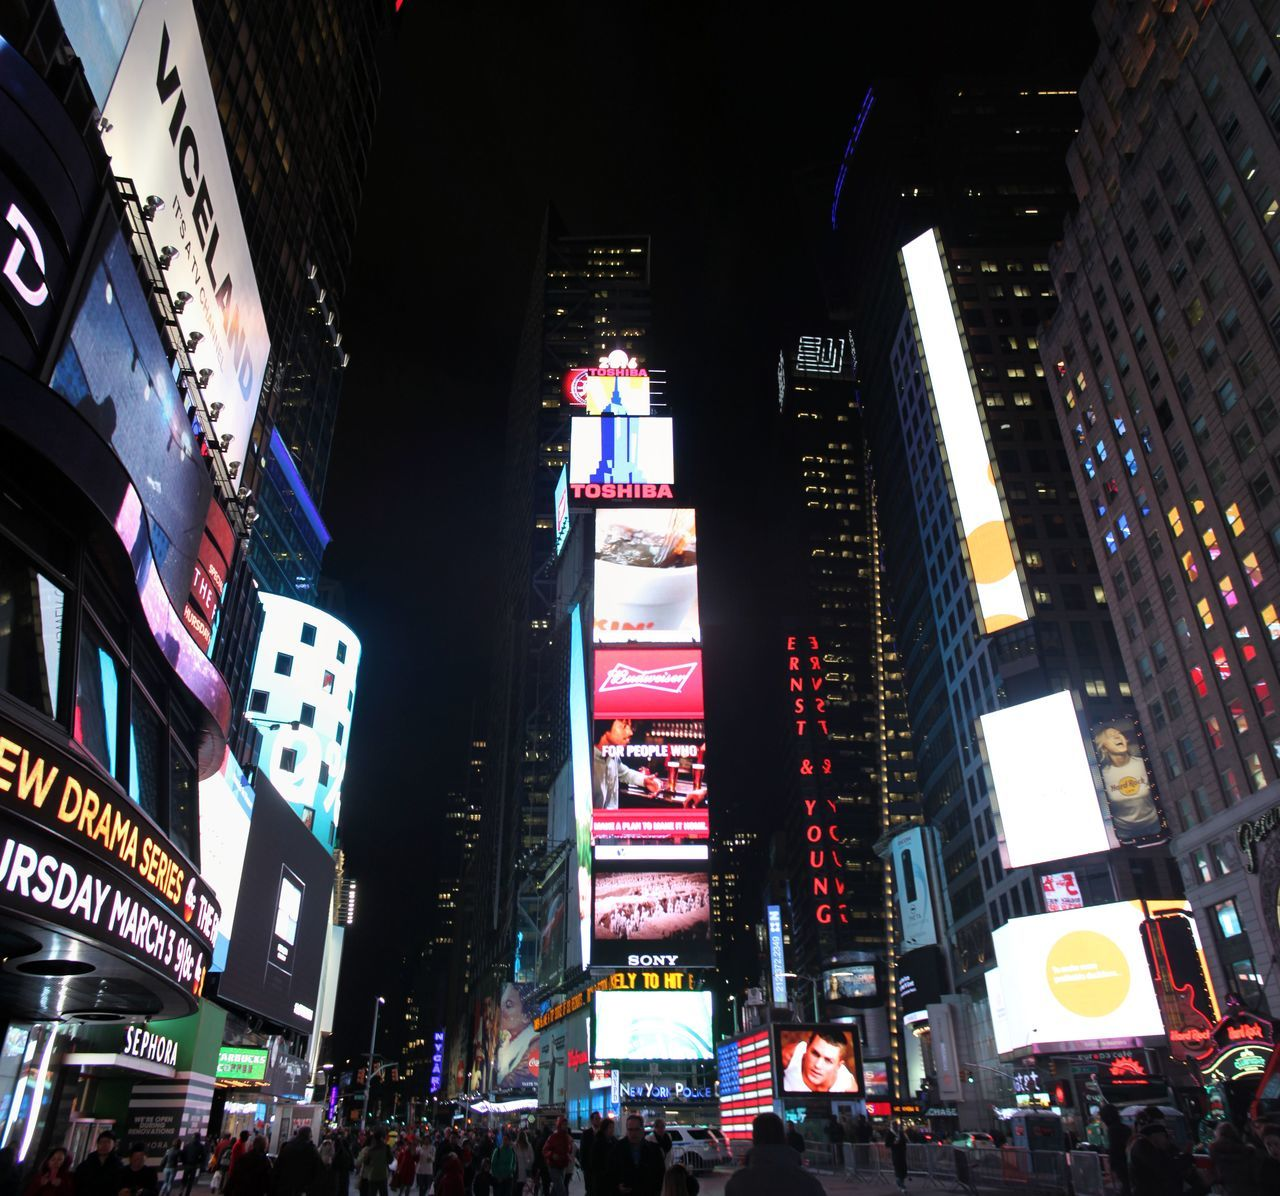 Croweded Manhattan New York New York Night Panorama Screen Light Time Square Time Square, New York United States